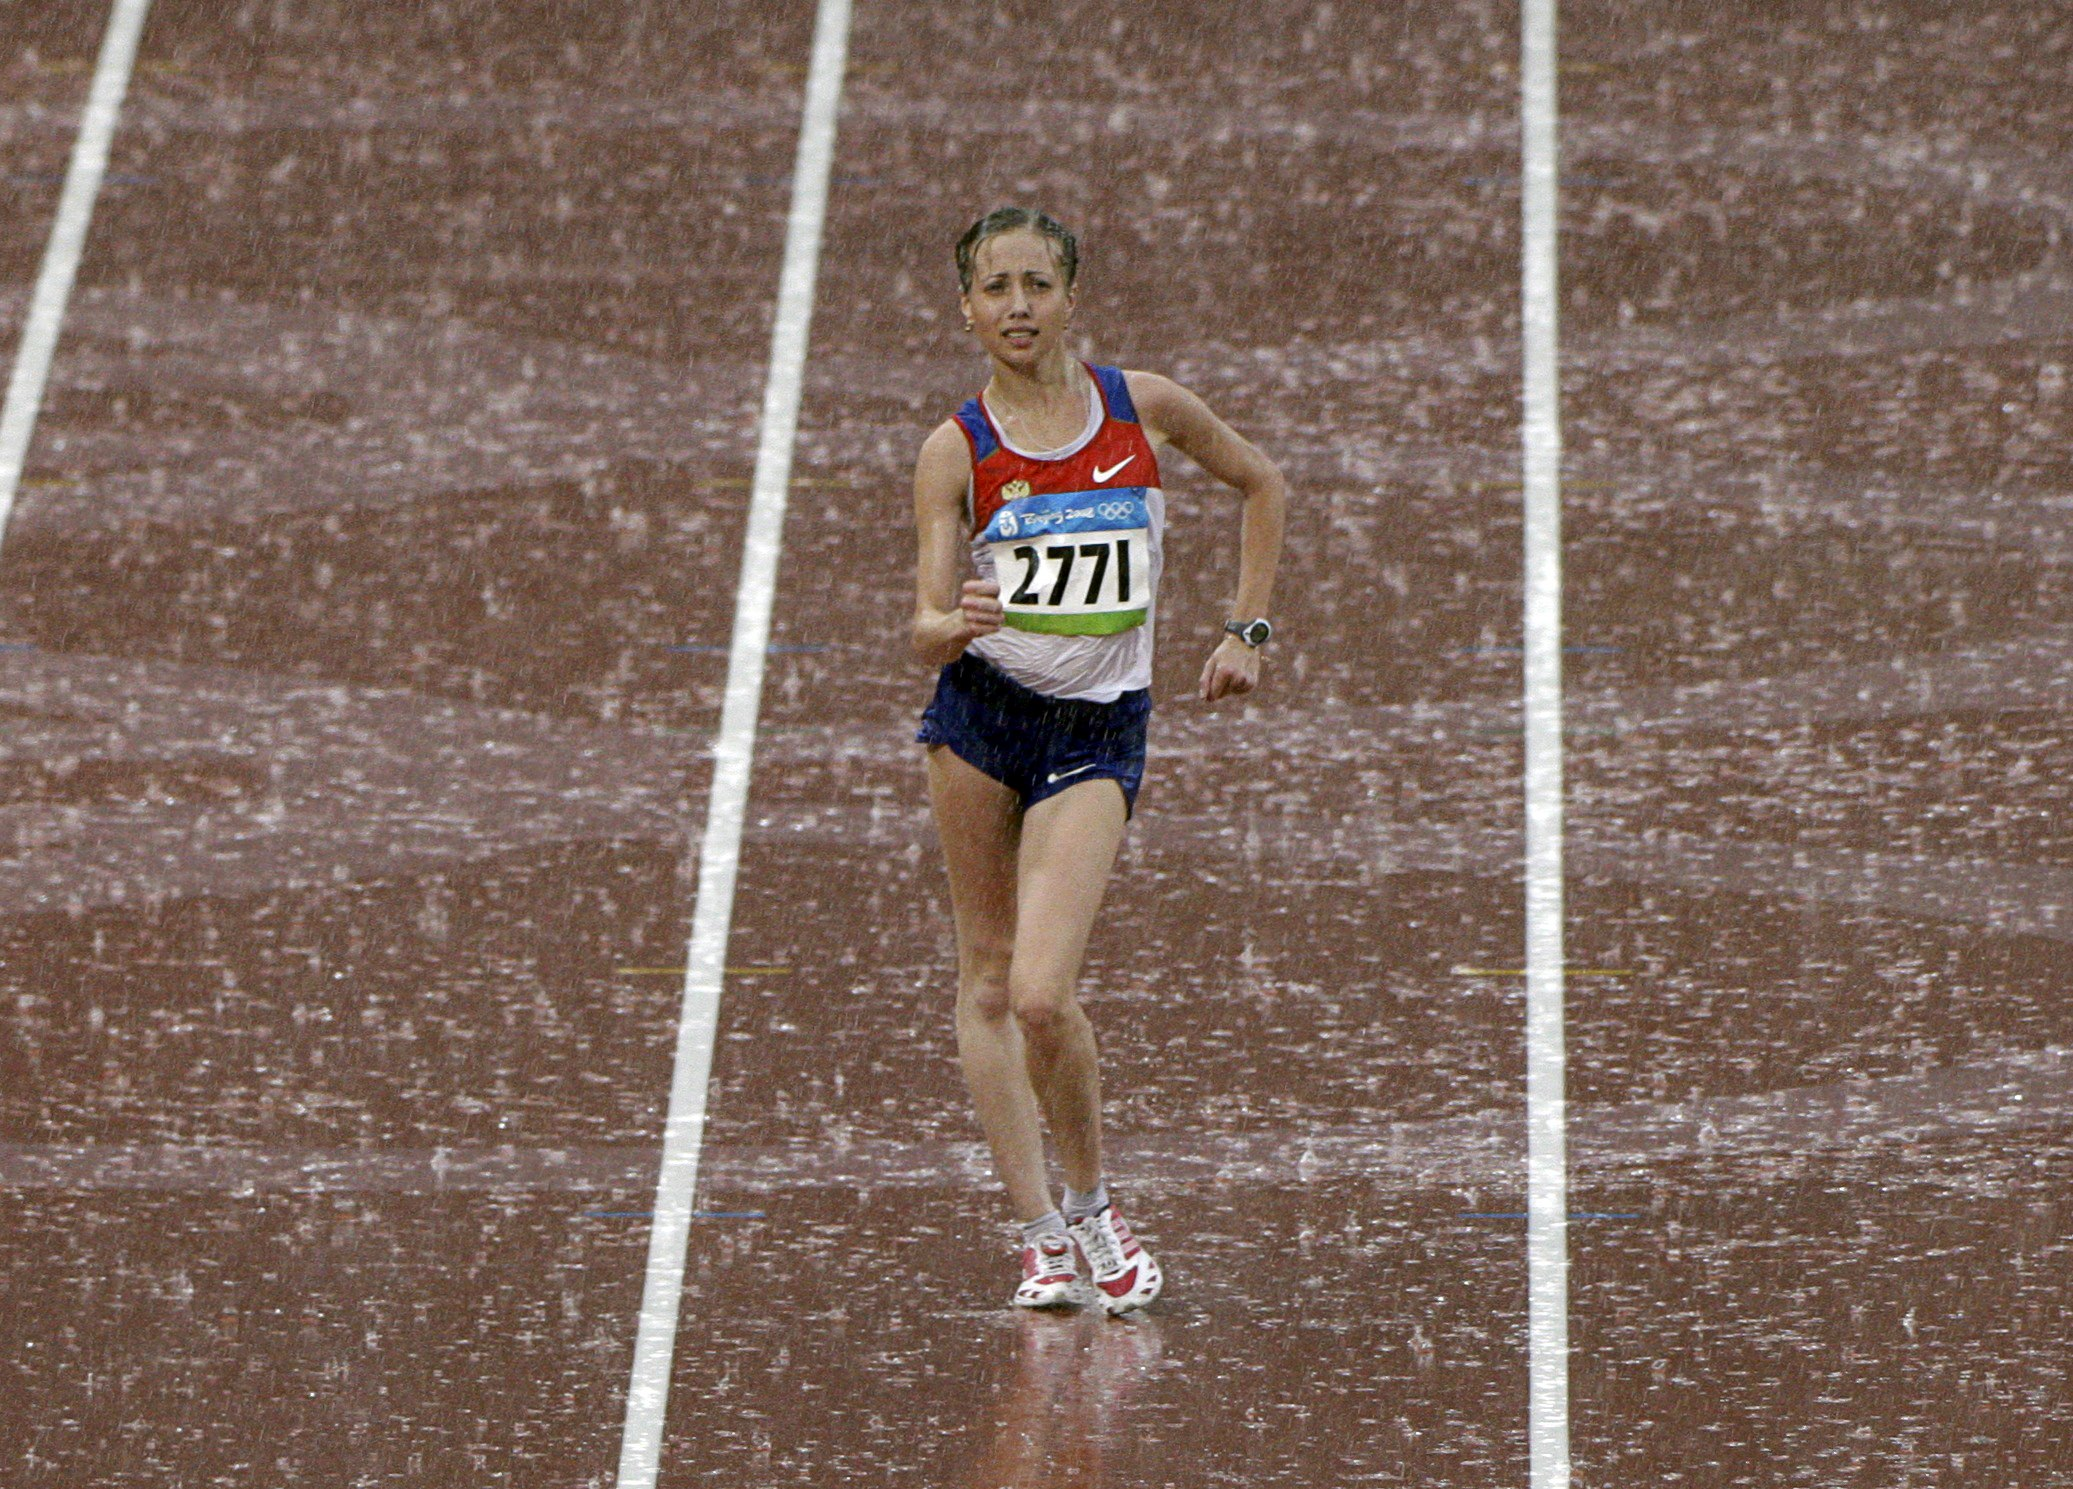 Olga Kaniskina of Russia competes in the women's 20km walk of the athletics competition in the National Stadium at the Beijing 2008 Olympic Games in C...